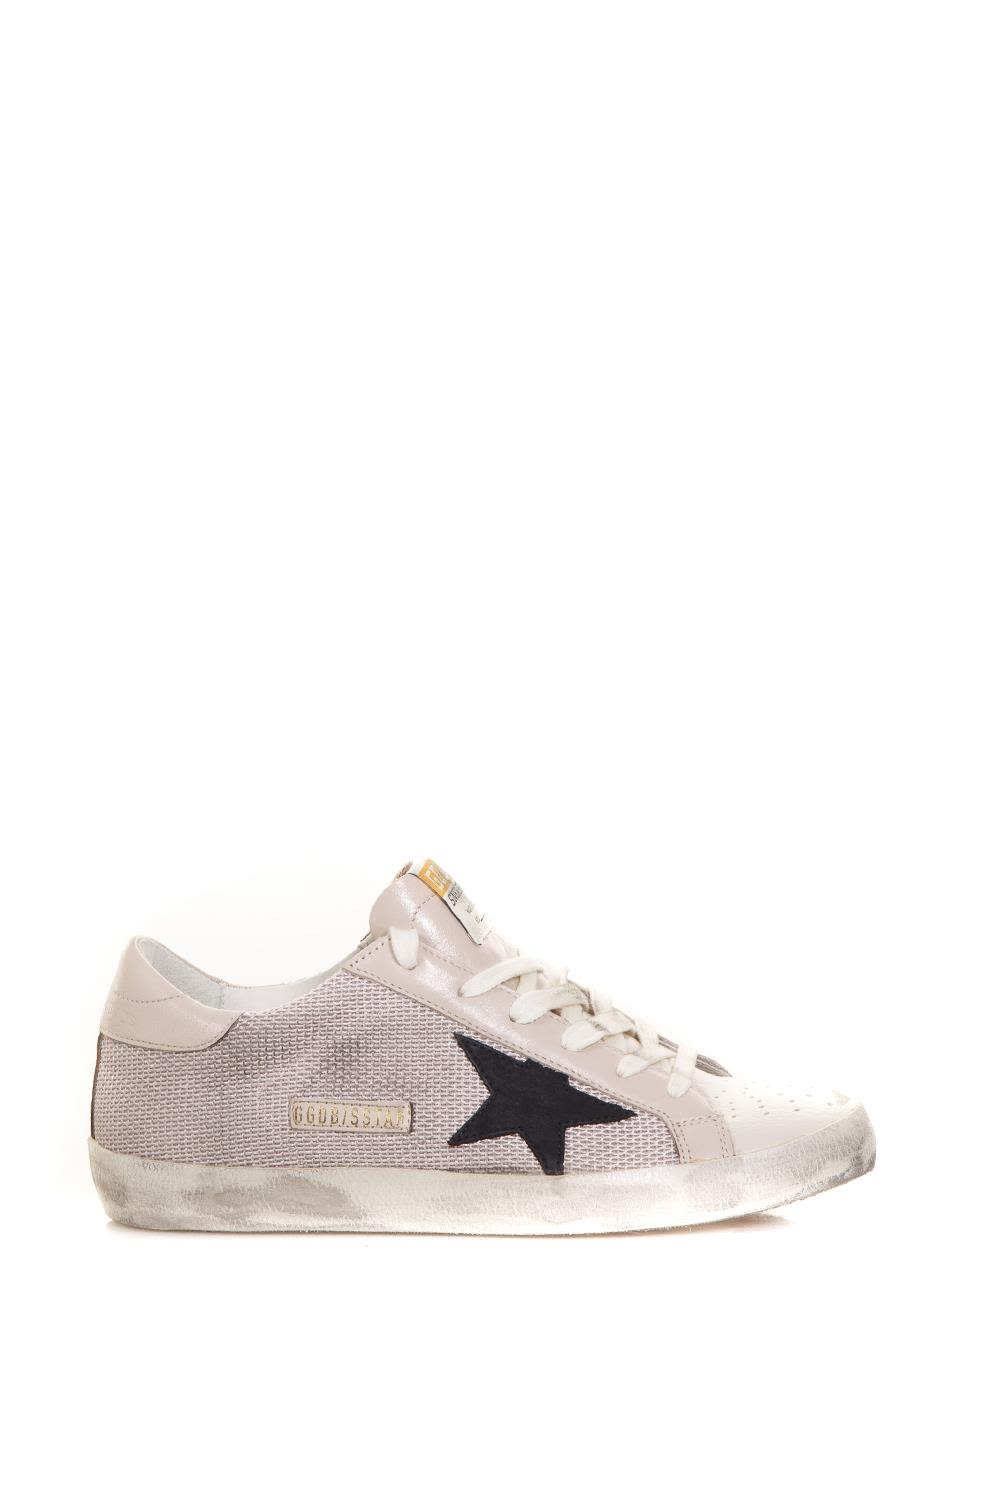 PINK TEXTURE SUPER STAR SNEAKERS